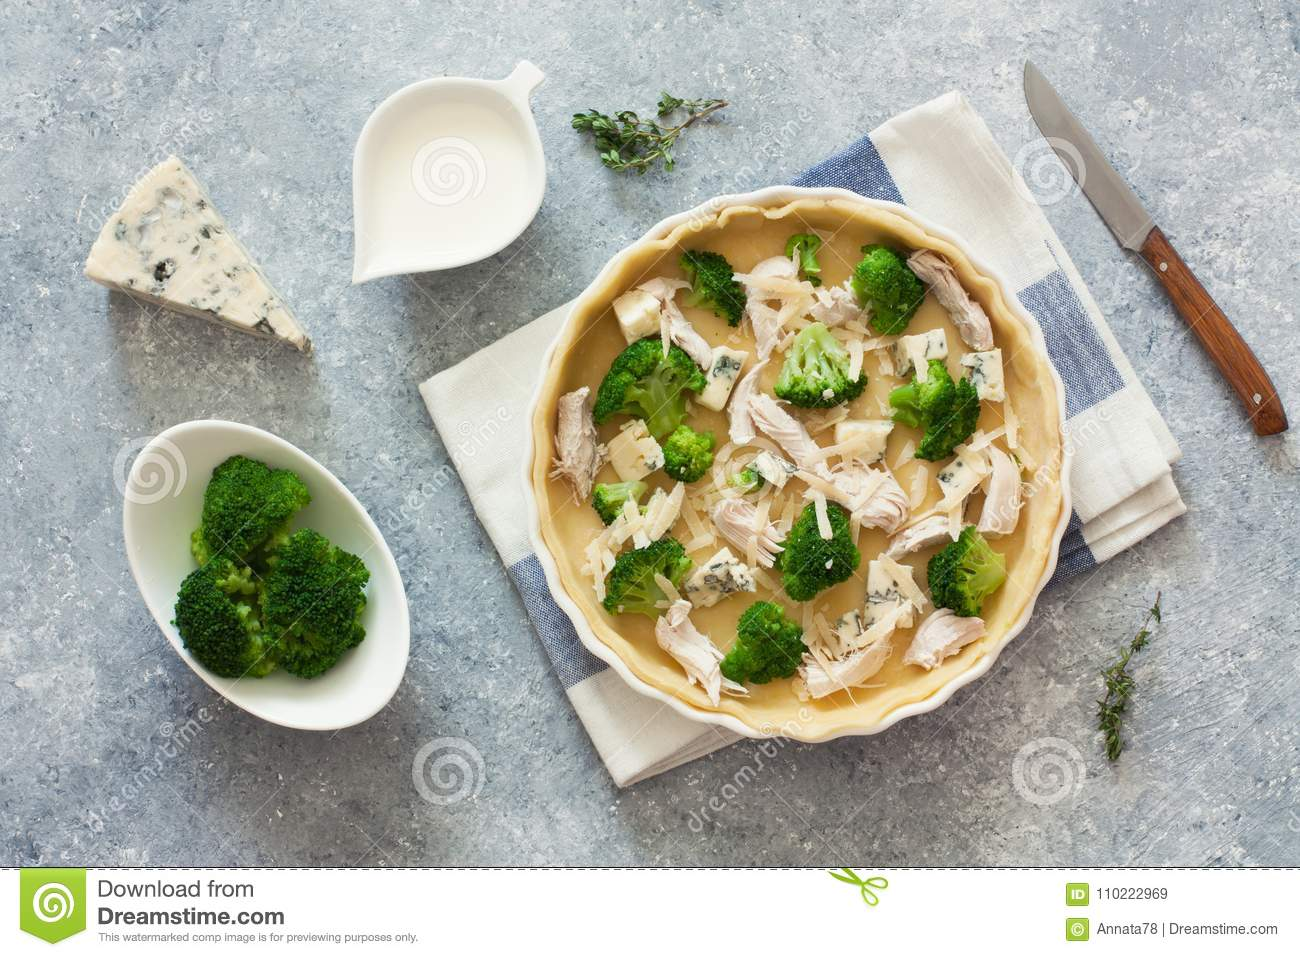 Broccoli Chicken And Cheese Pie Quiche Stock Image Image Of Bake Background 110222969